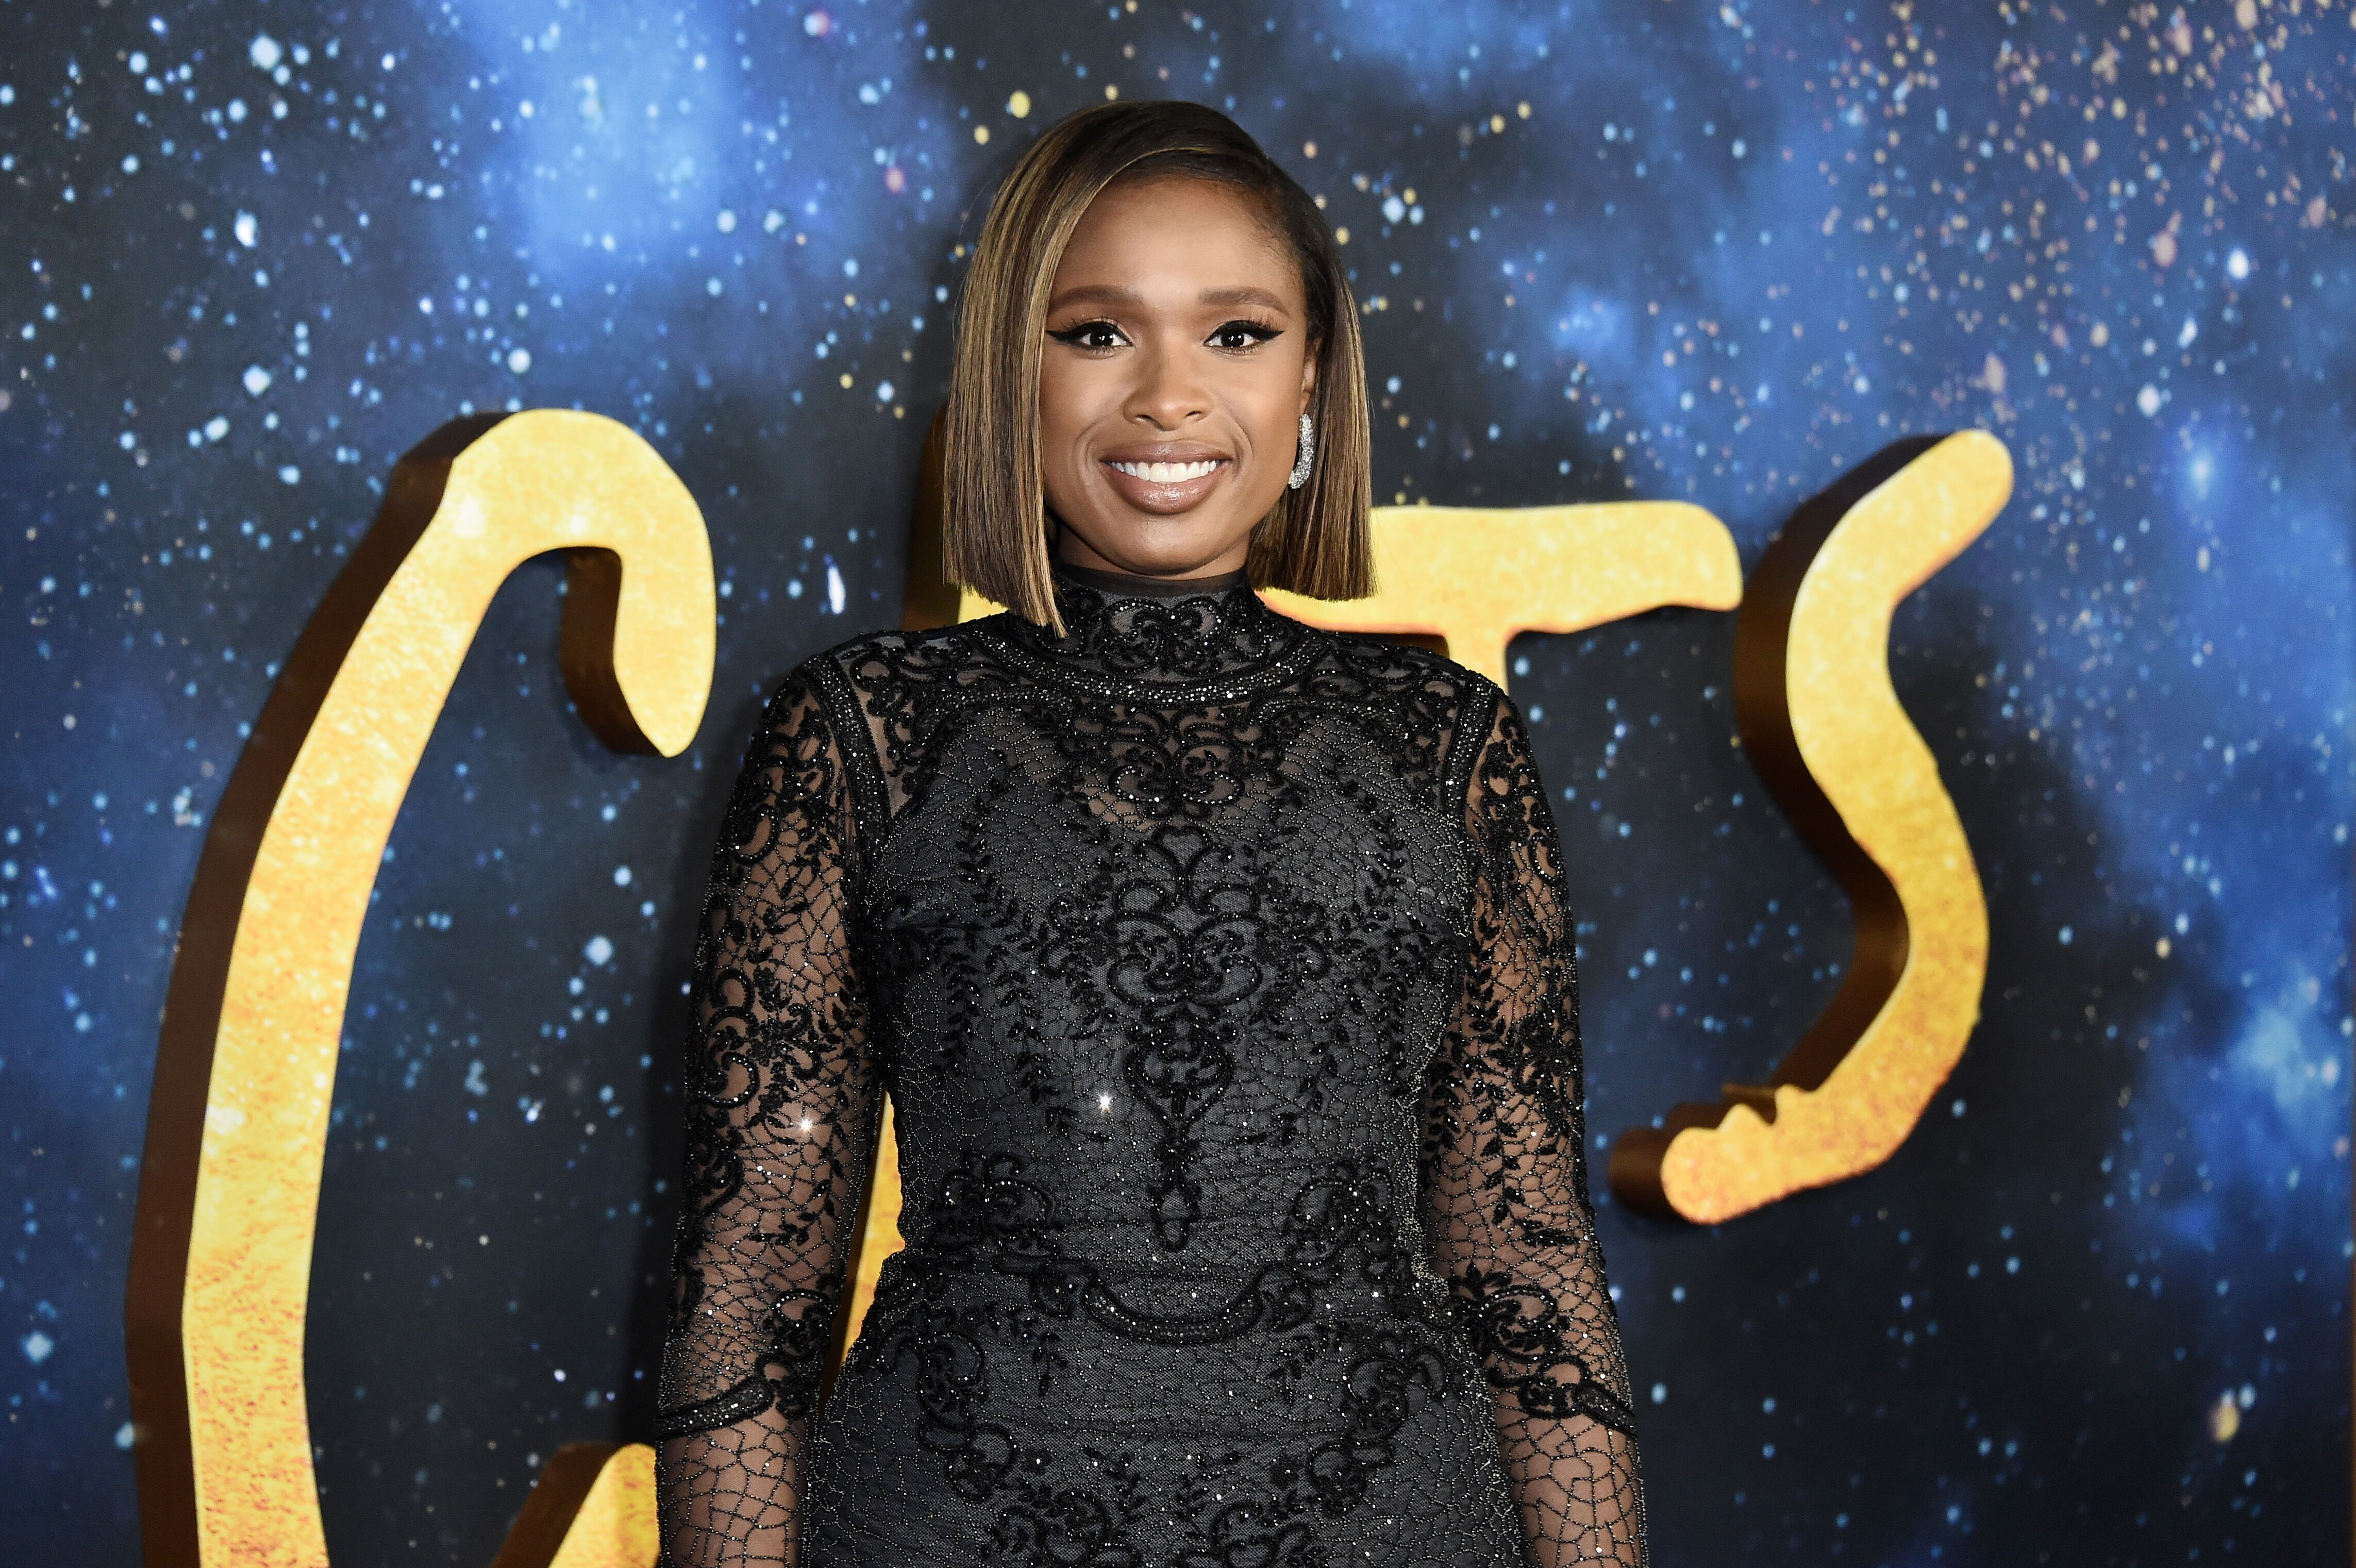 """Jennifer Hudson attends the world premiere of """"Cats"""" at Alice Tully Hall, Lincoln Center on December 16, 2019 in New York City 